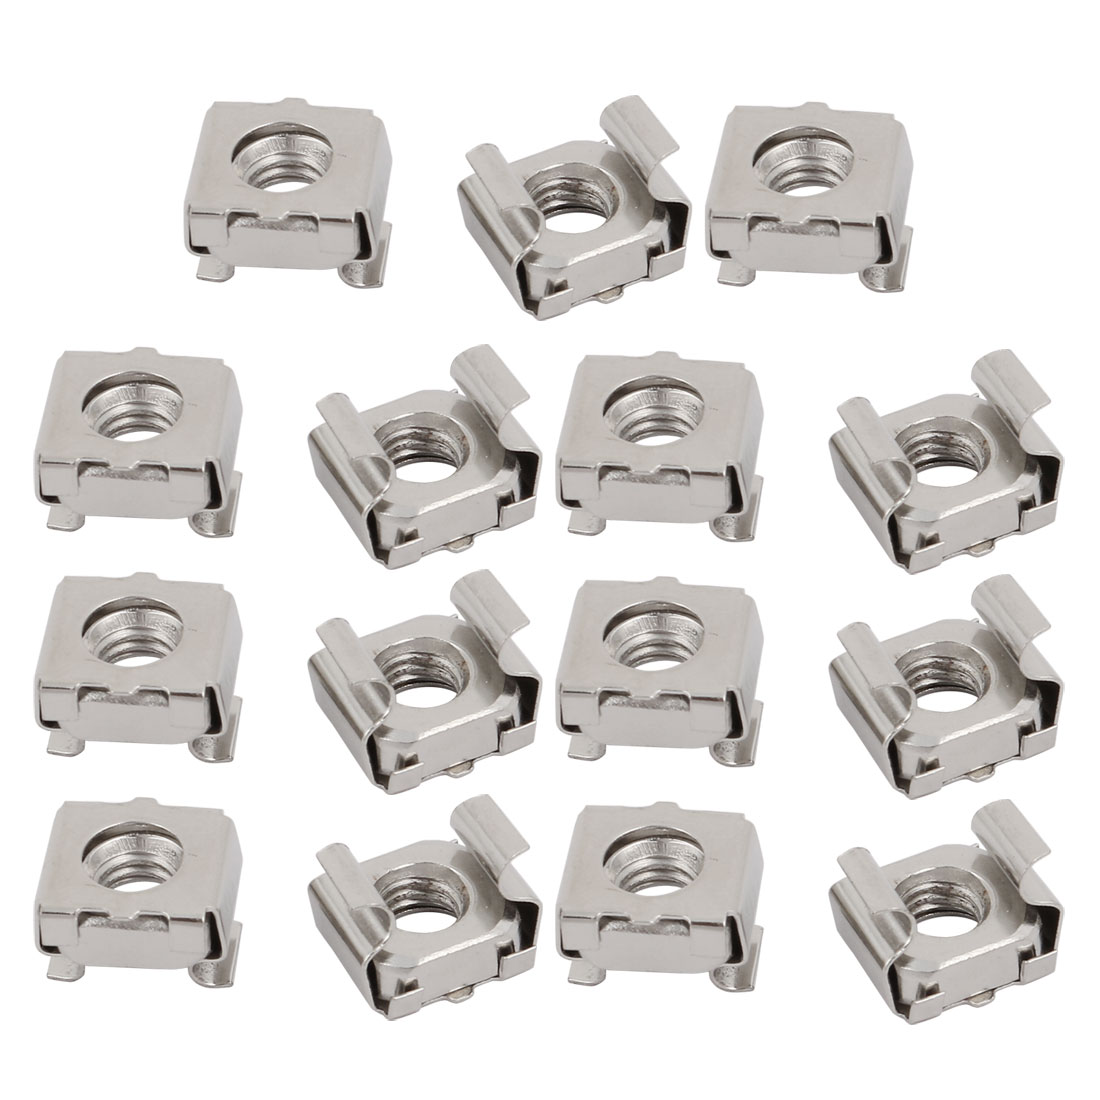 15pcs M6 Carbon Steel Nickle Plated Cage Nut for Server Shelf Cabinet